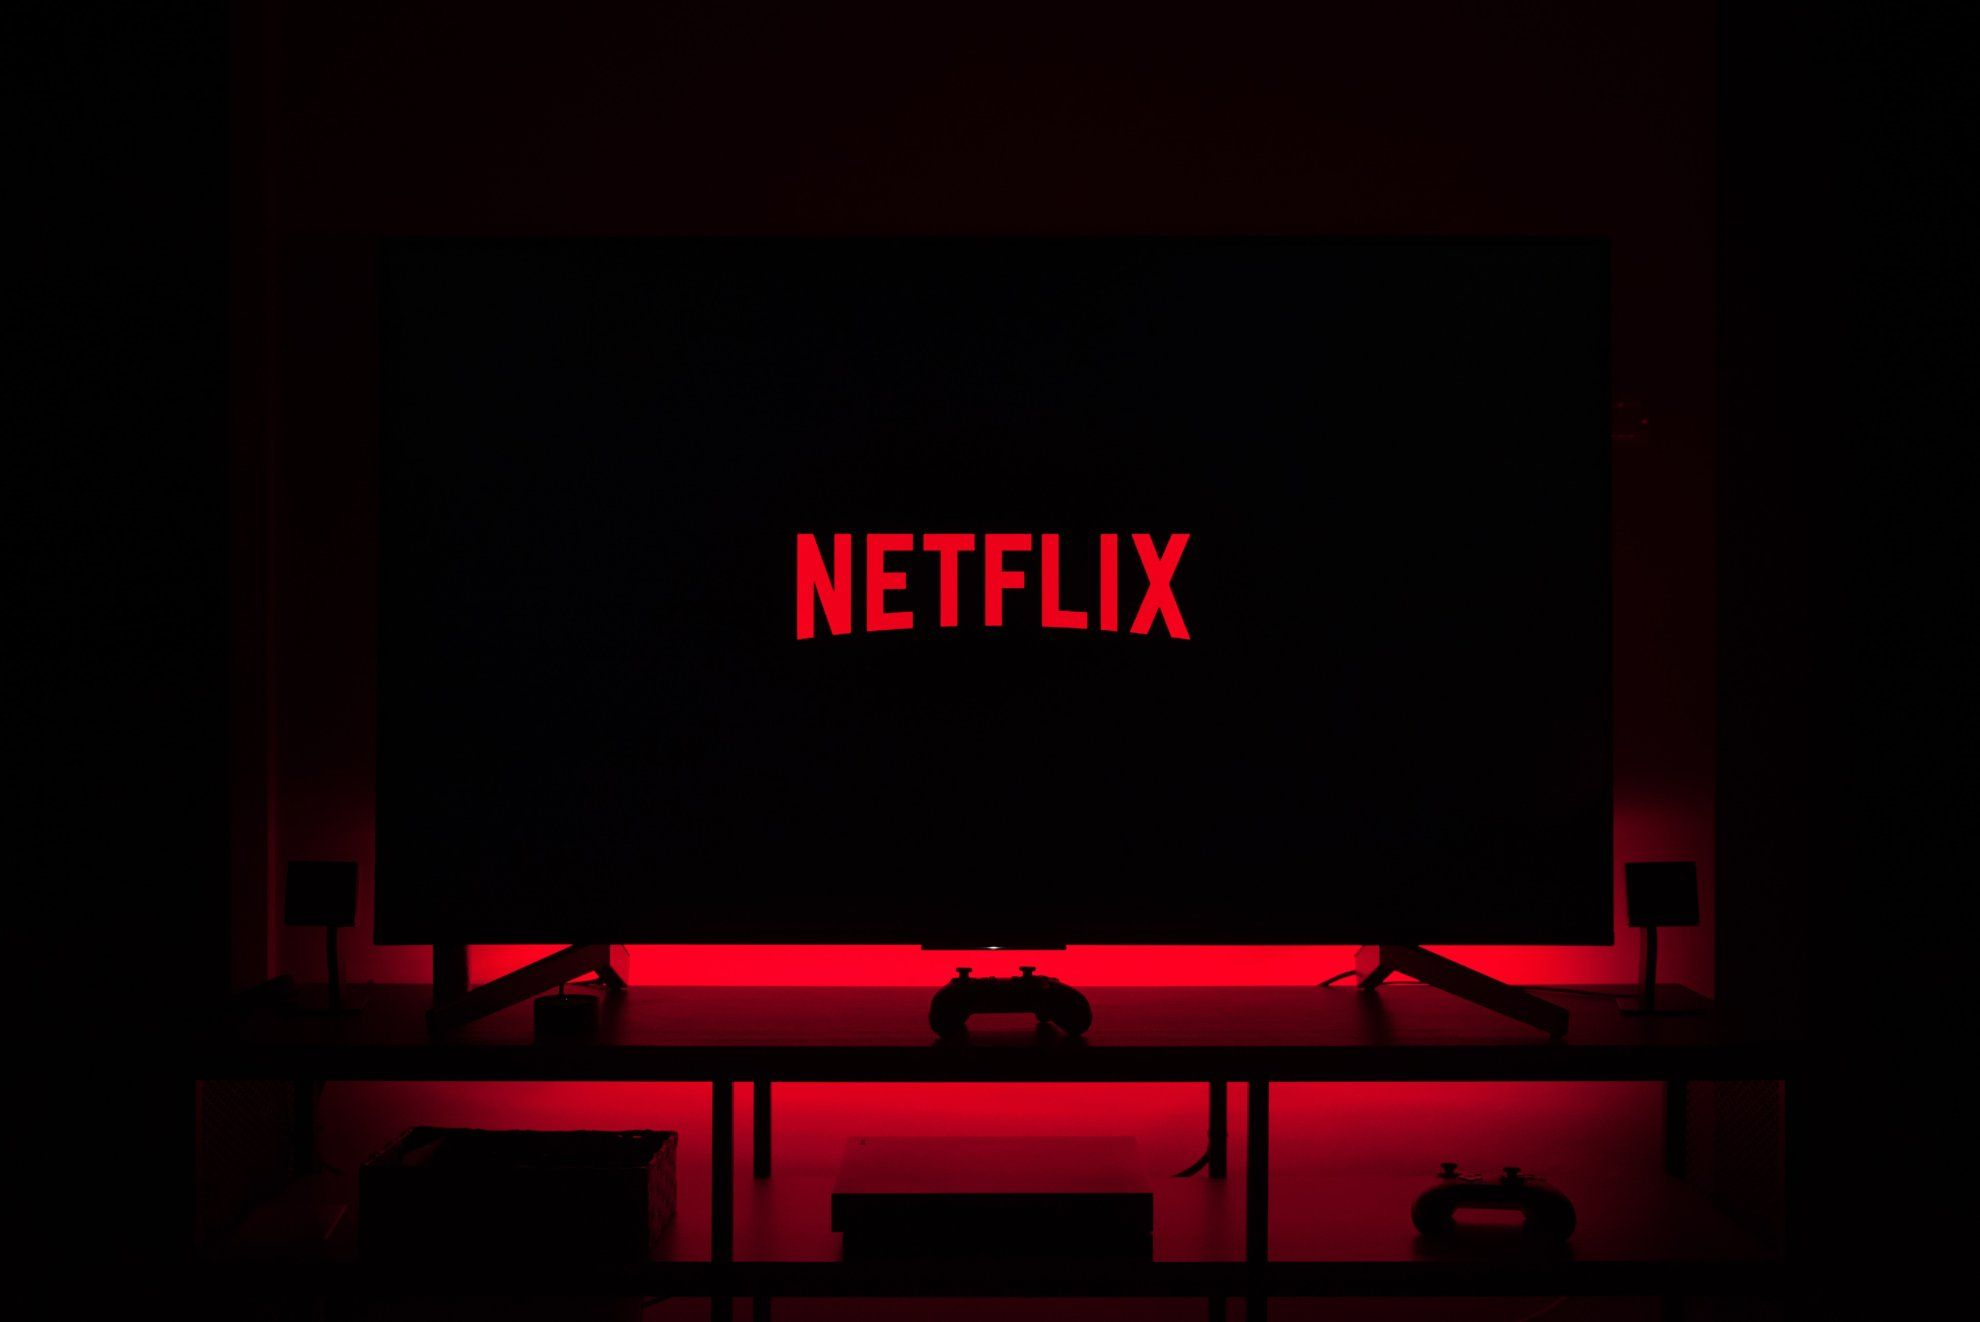 Your Netflix Account May Be on Sale on Darkweb. Protect It